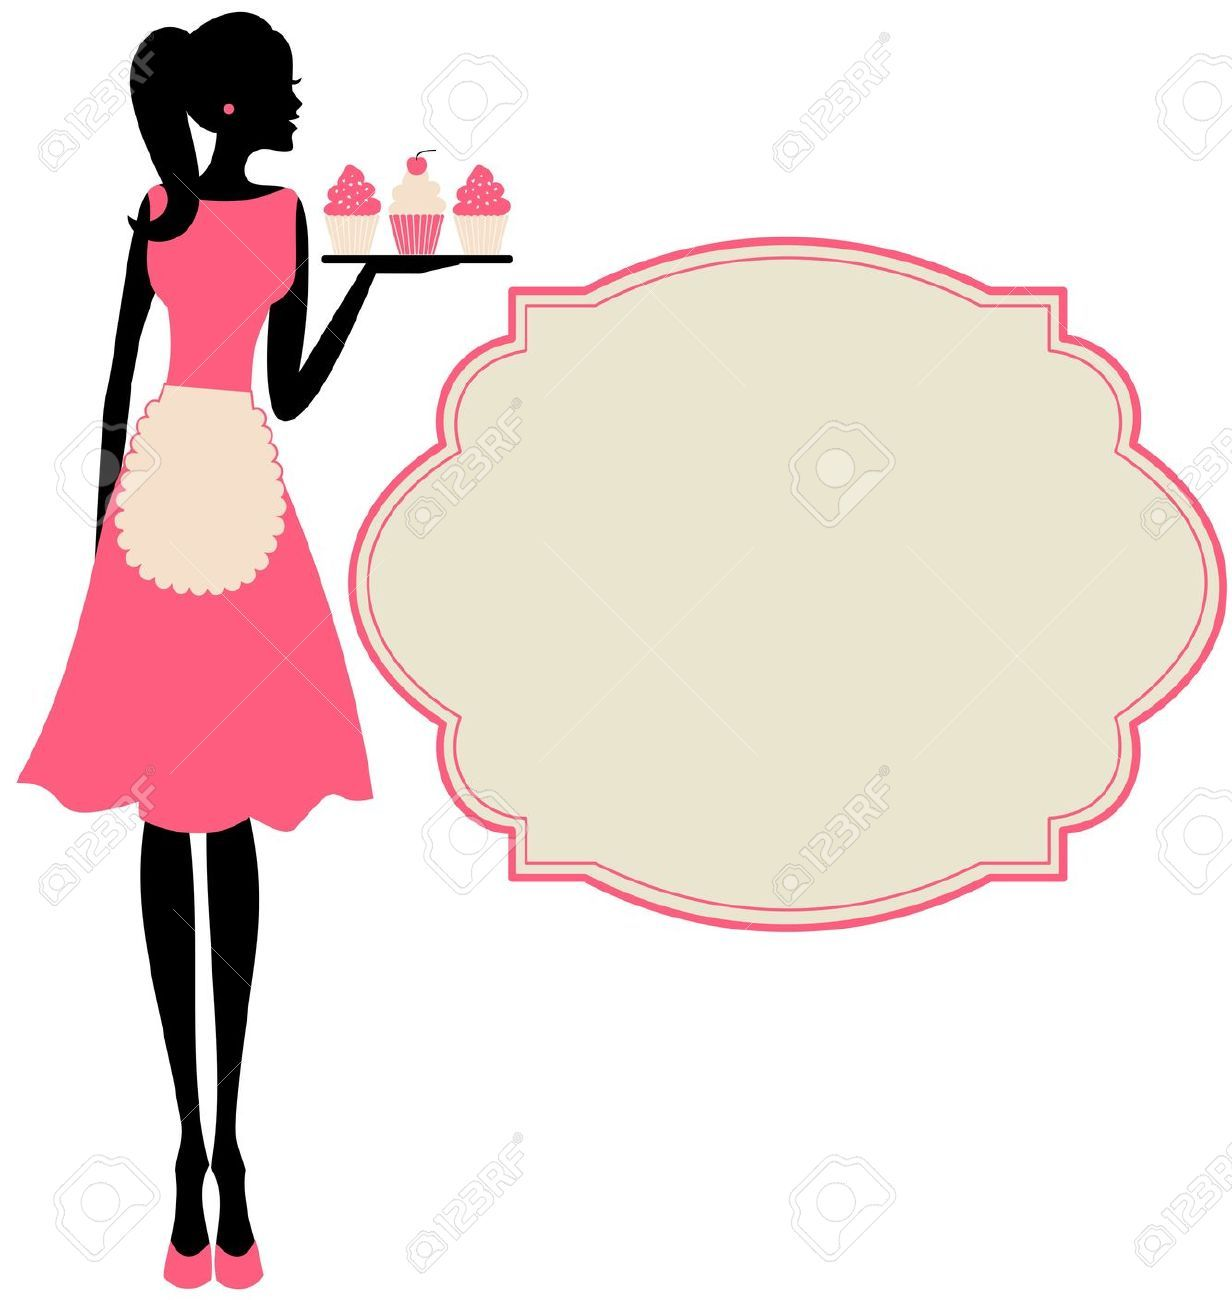 Women clipart bakery. Awesome vintage clip